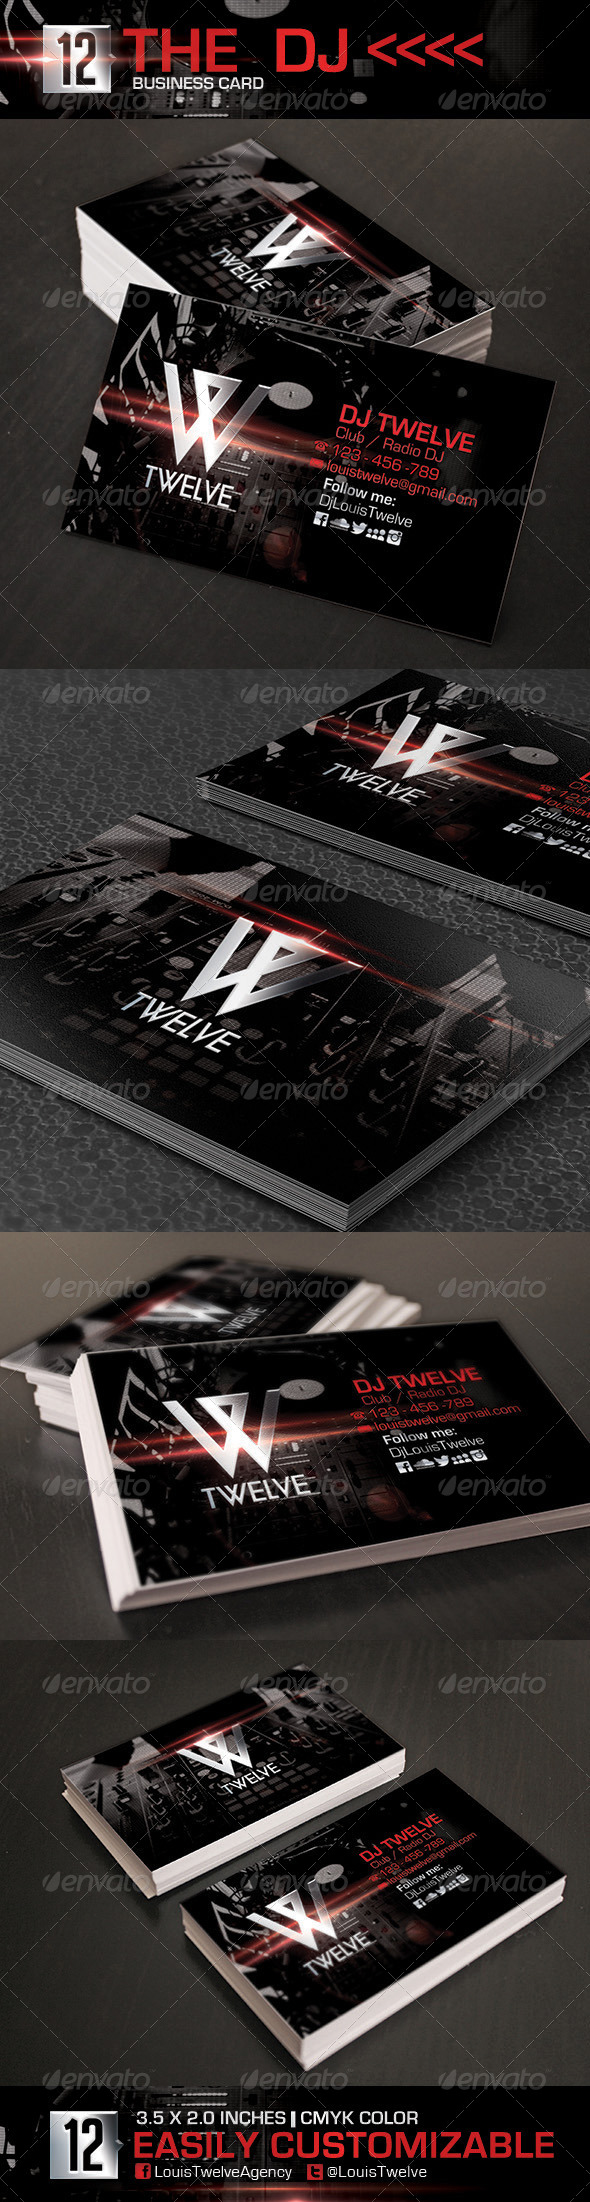 GraphicRiver The Dj Business Card 5751415